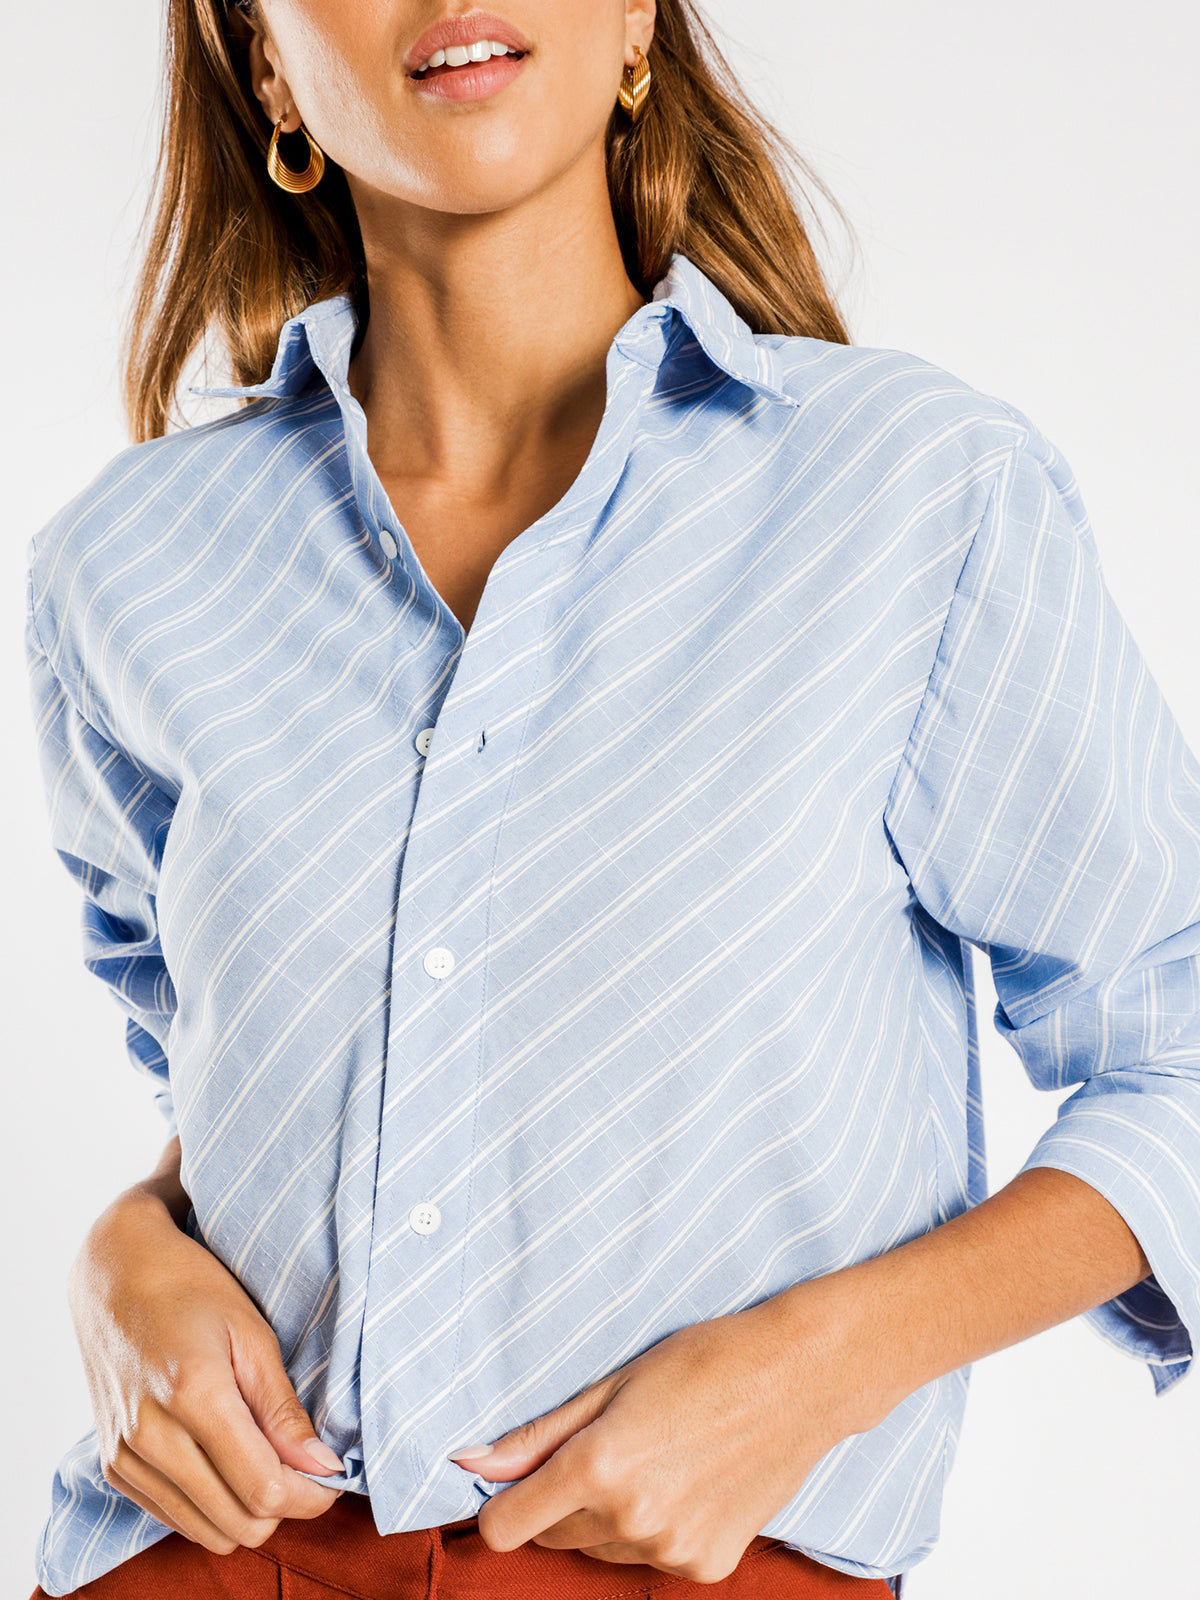 Hanam Oversized Shirt in Blue & White Stripe